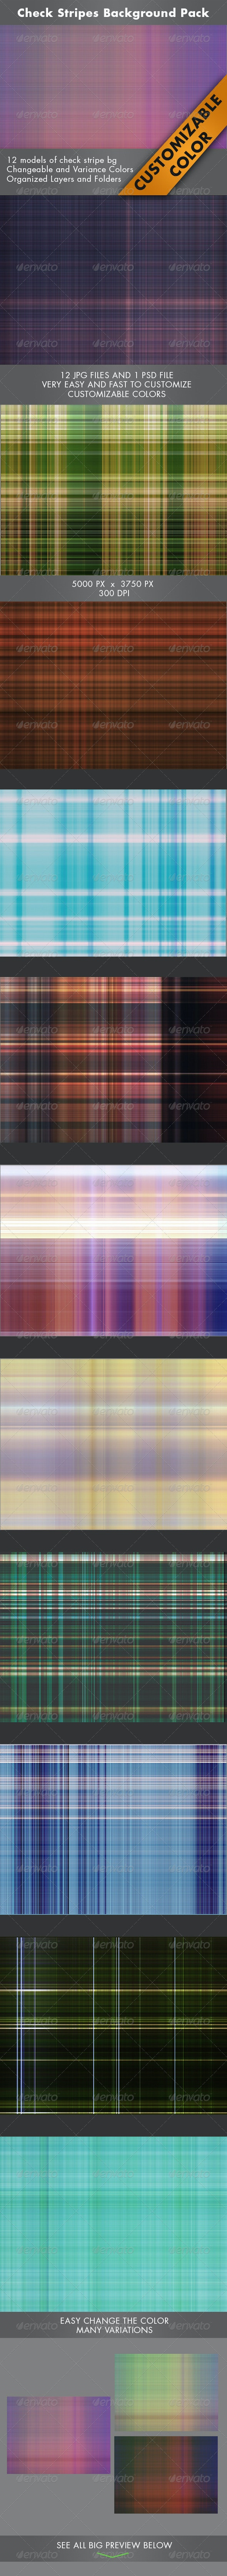 Check Stripes Background - Abstract Backgrounds